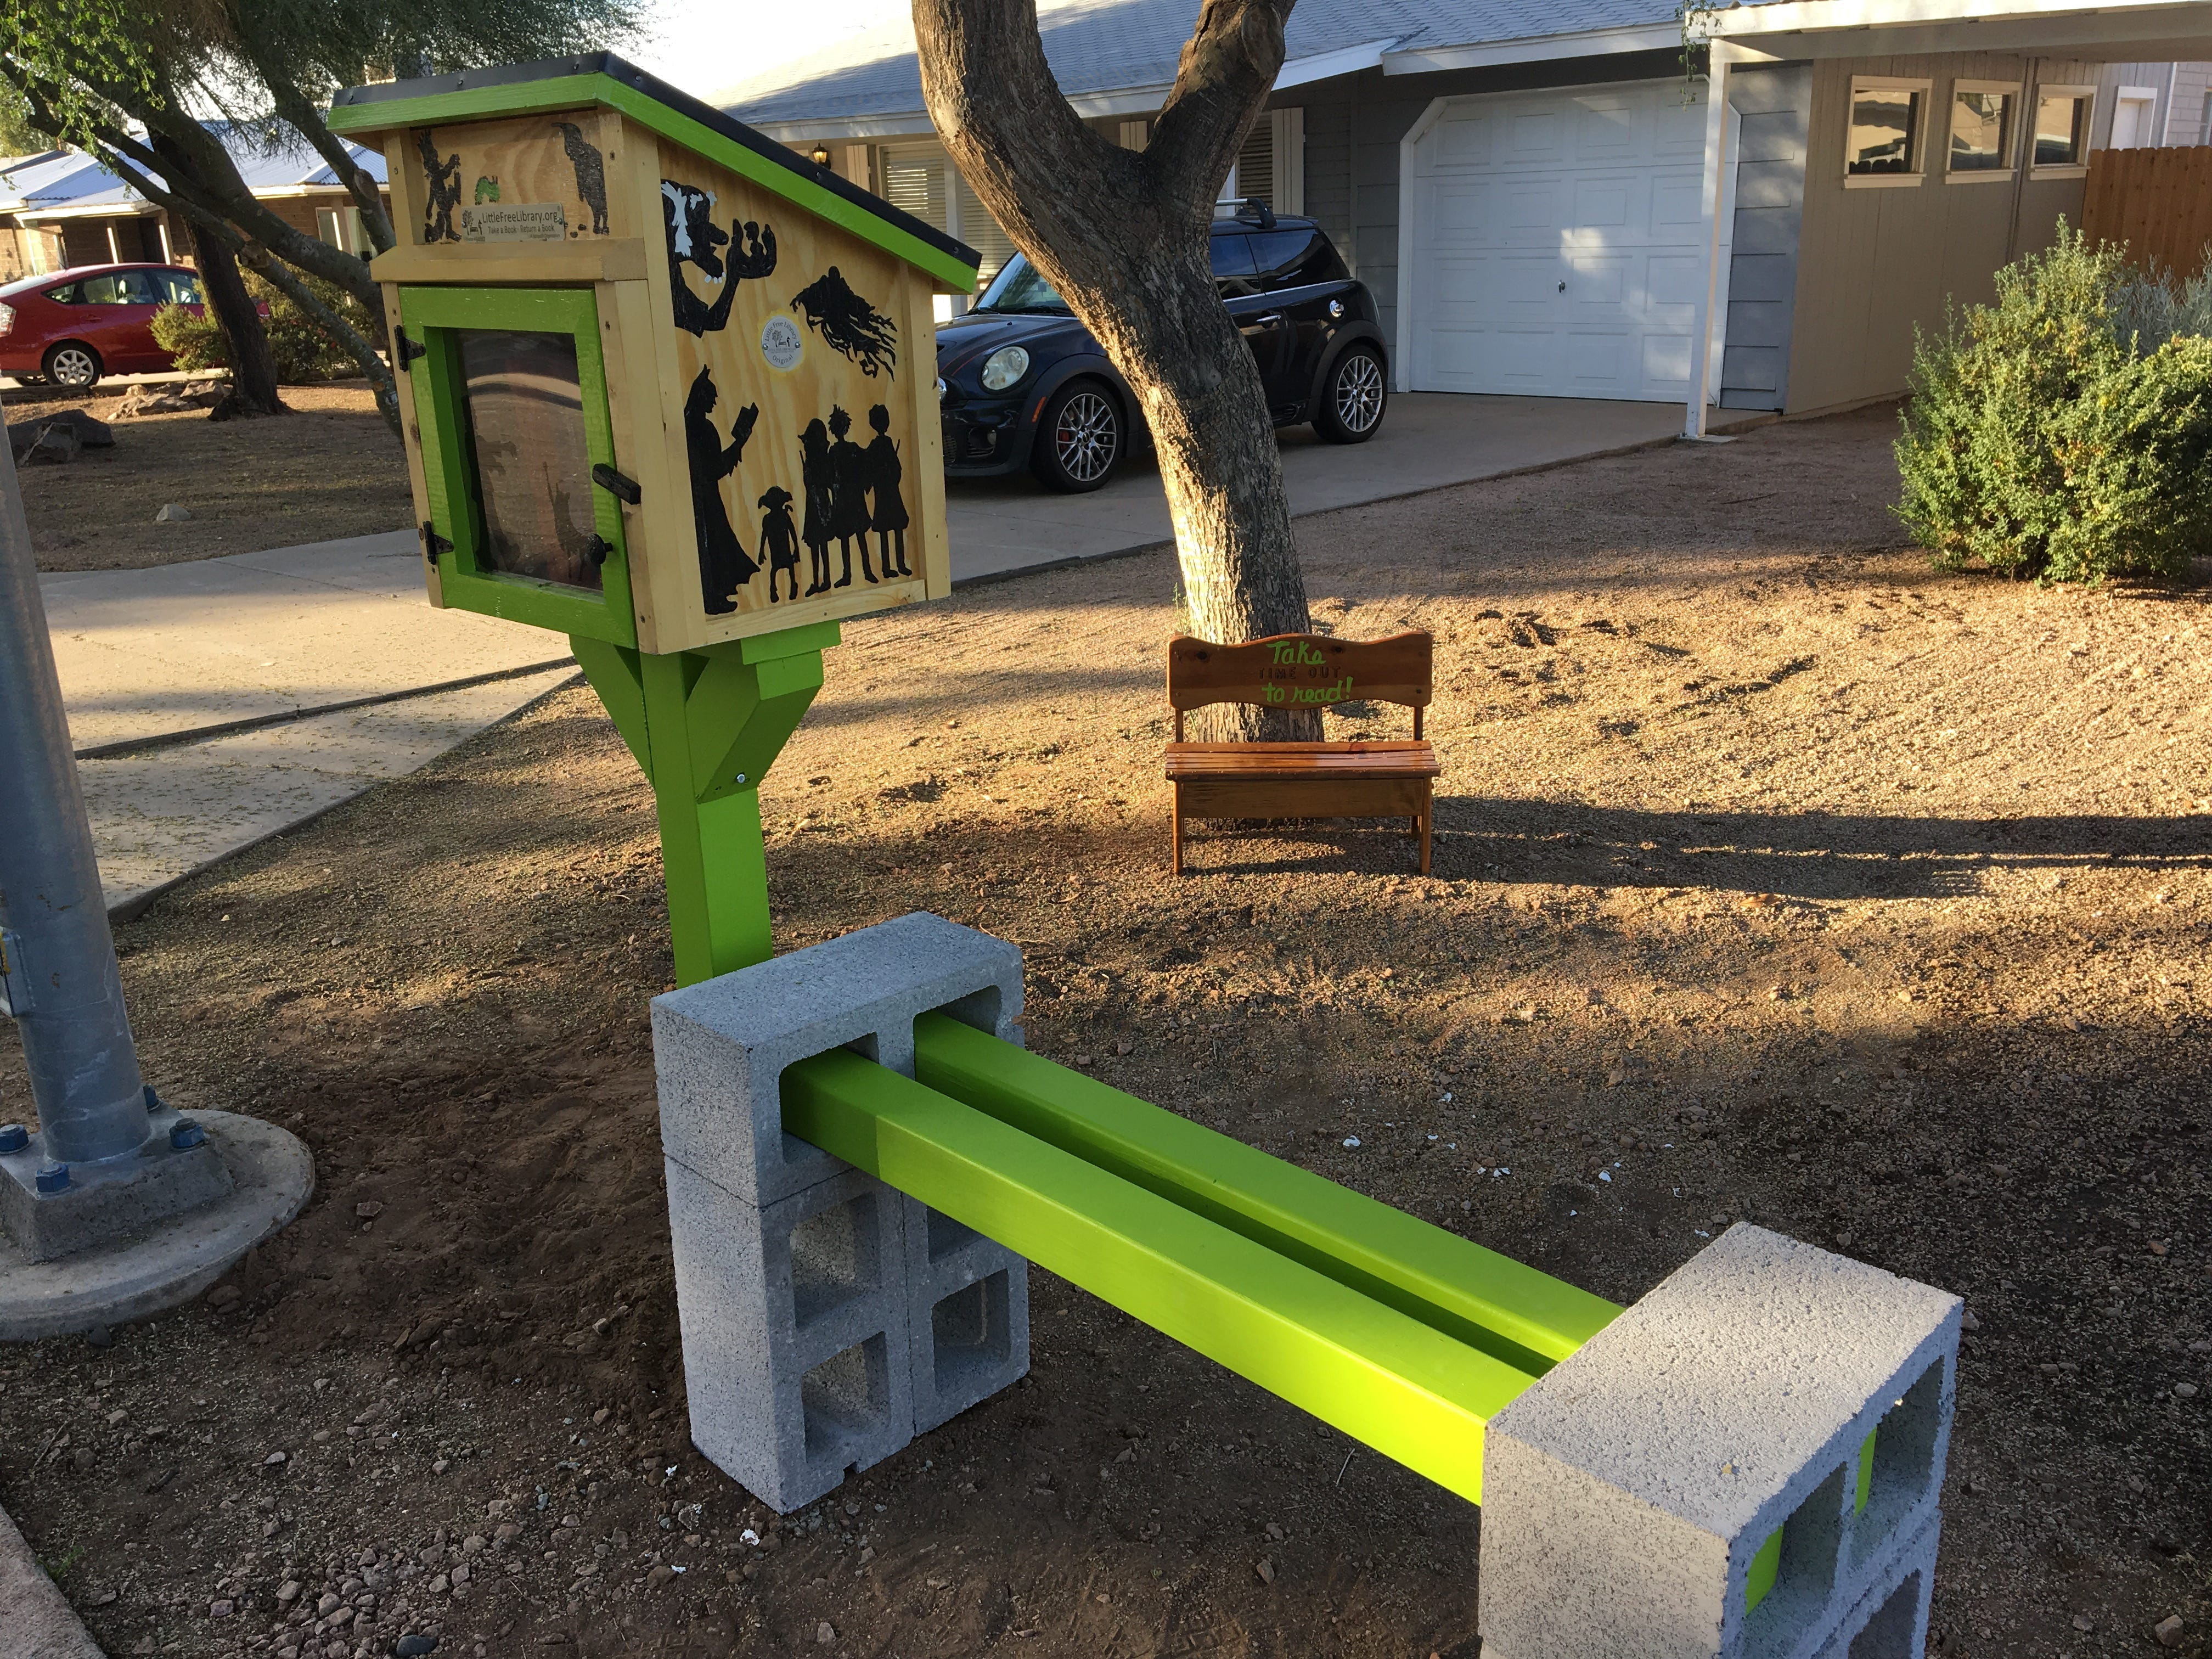 """Karina Bland met Shaun in a parking lot to buy a bench for $10. It had the words """"TIME OUT"""" carved on it. She painted it to say, """"Take TIME OUT to Read."""""""